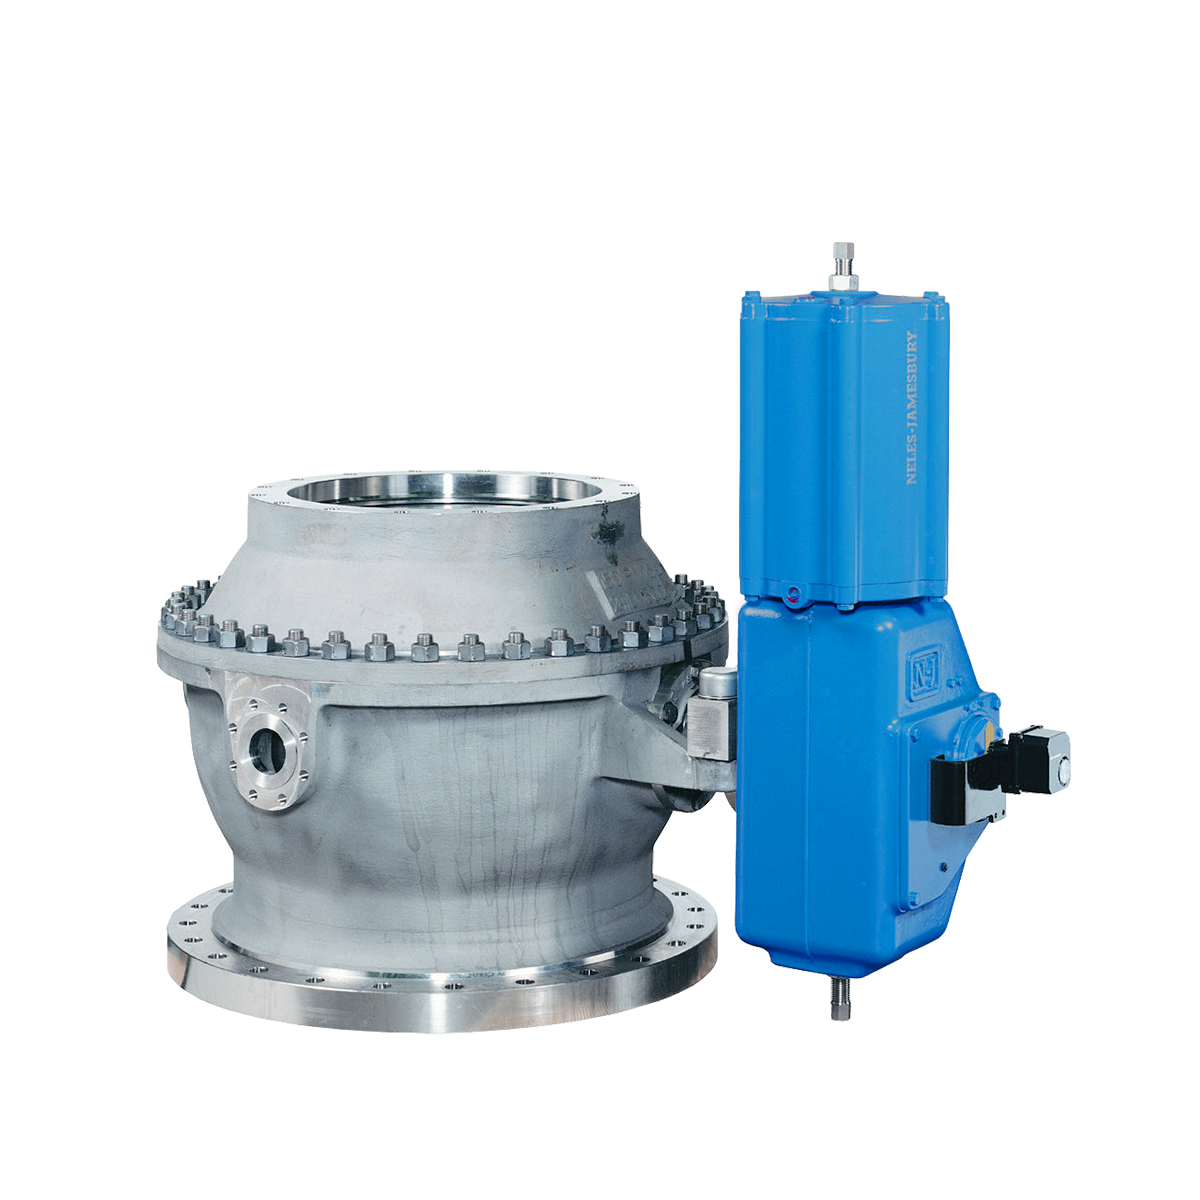 Delpro Valve Services and Repairs